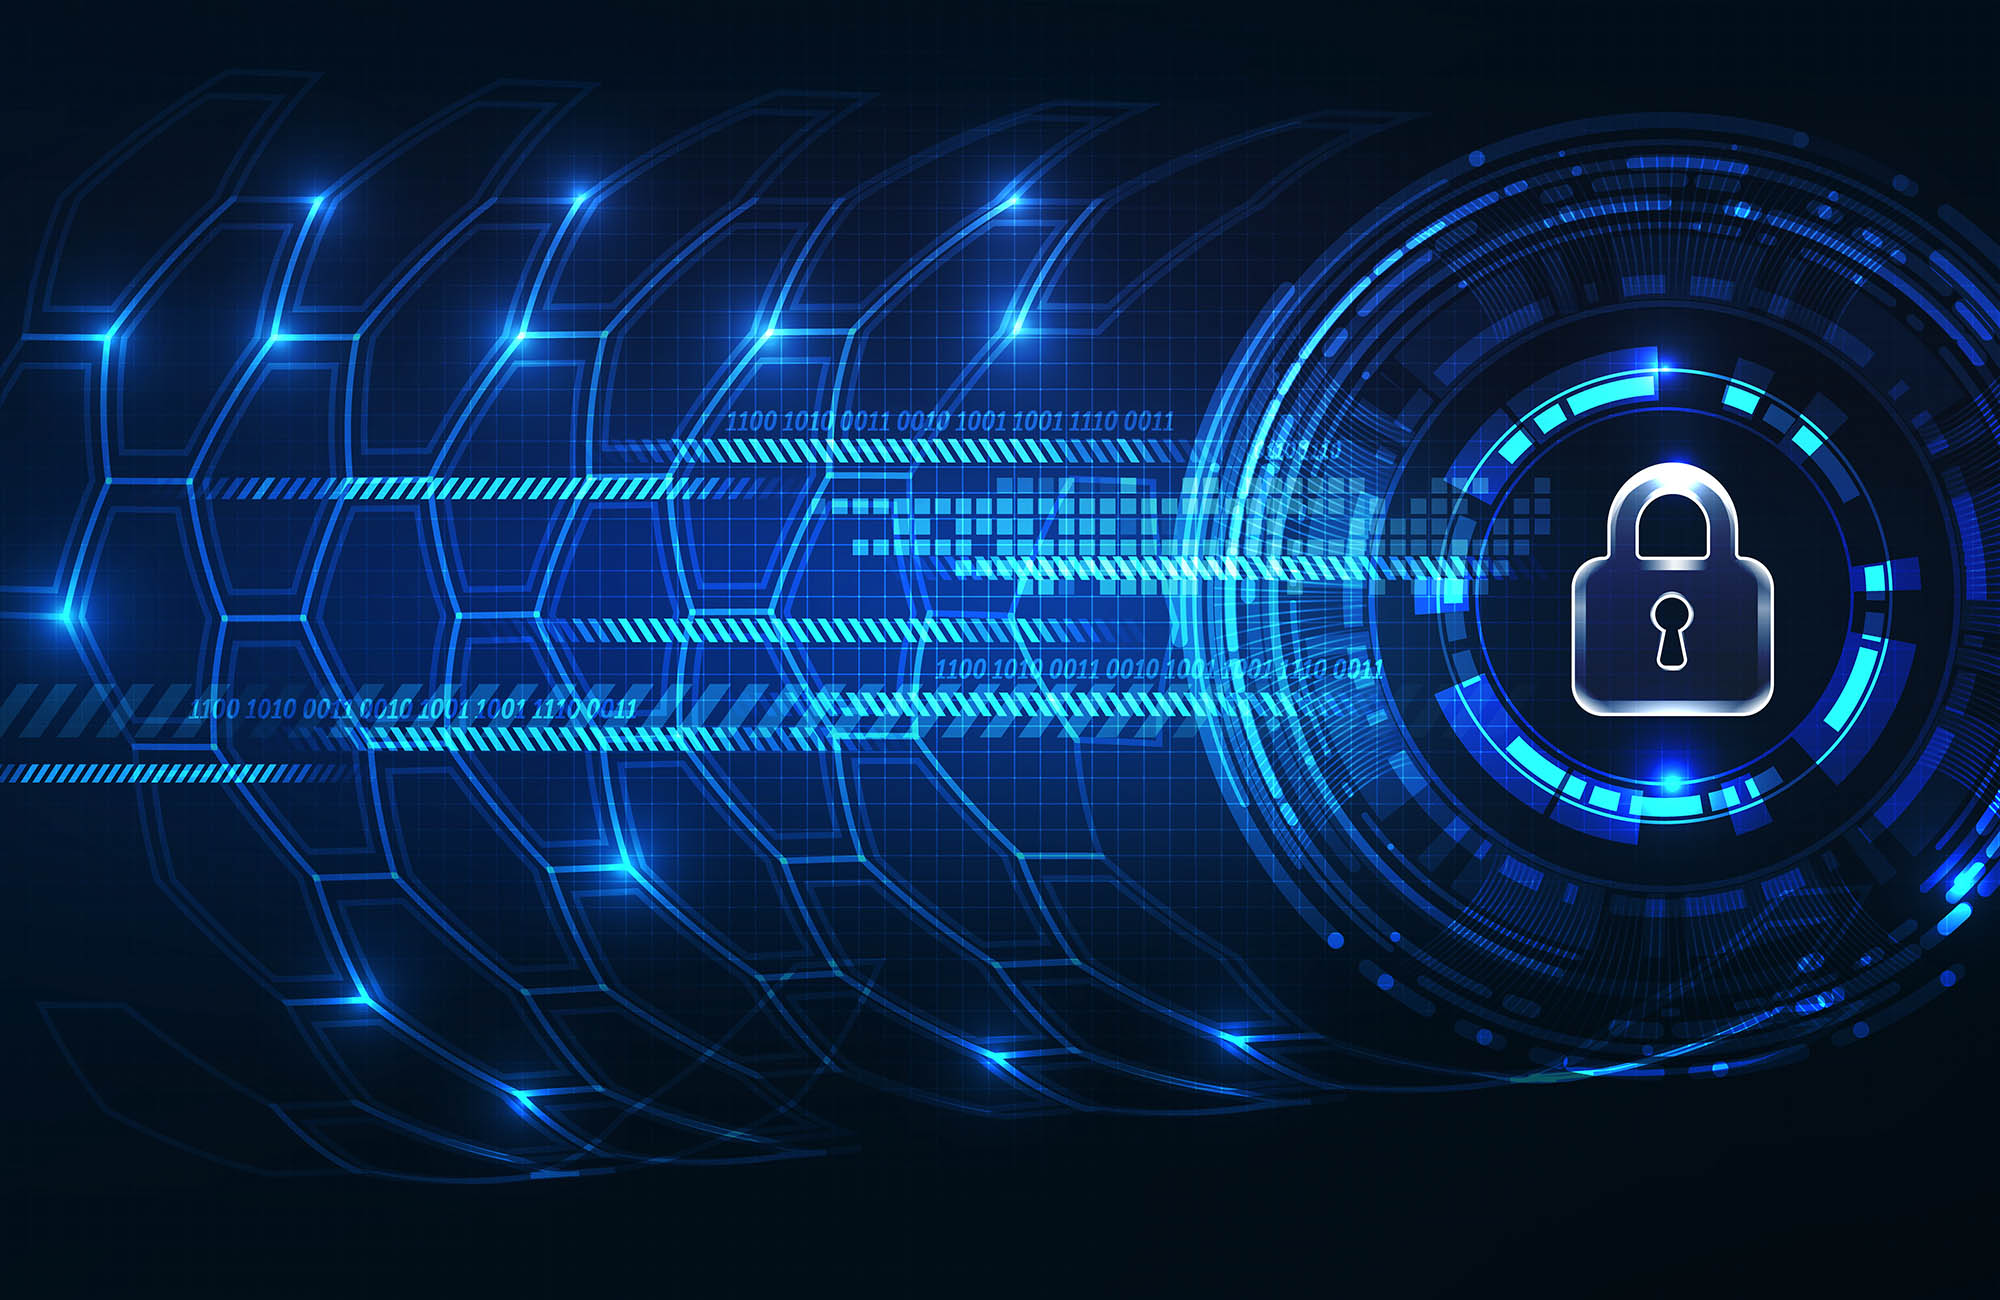 M_Cyber_security_banner_template_01